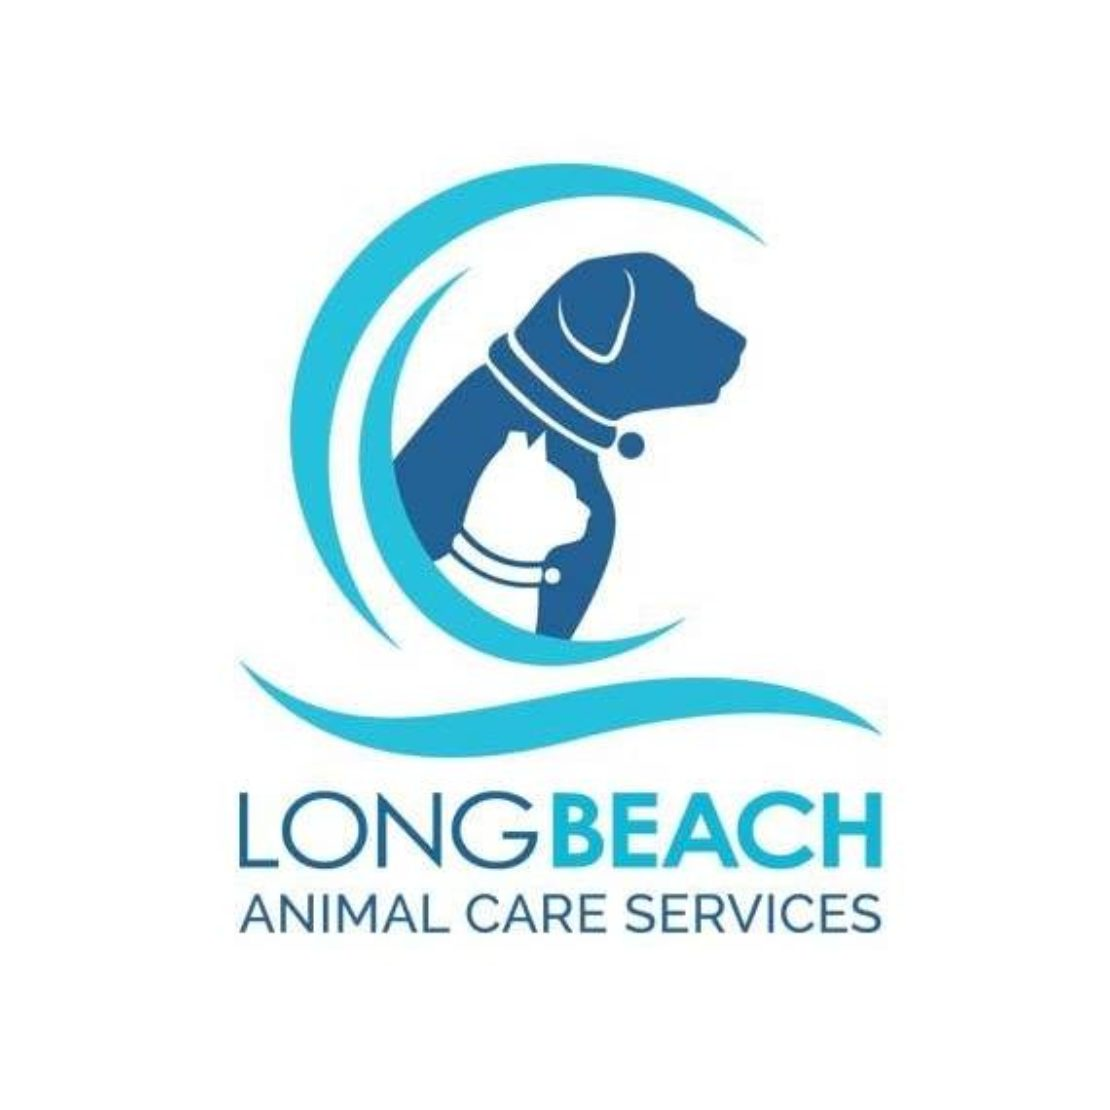 dark-blue, light-blue and white Long Beach Animal Care Services logo, with a large blue dog and a small white cat with ear tip. Both pets have collars